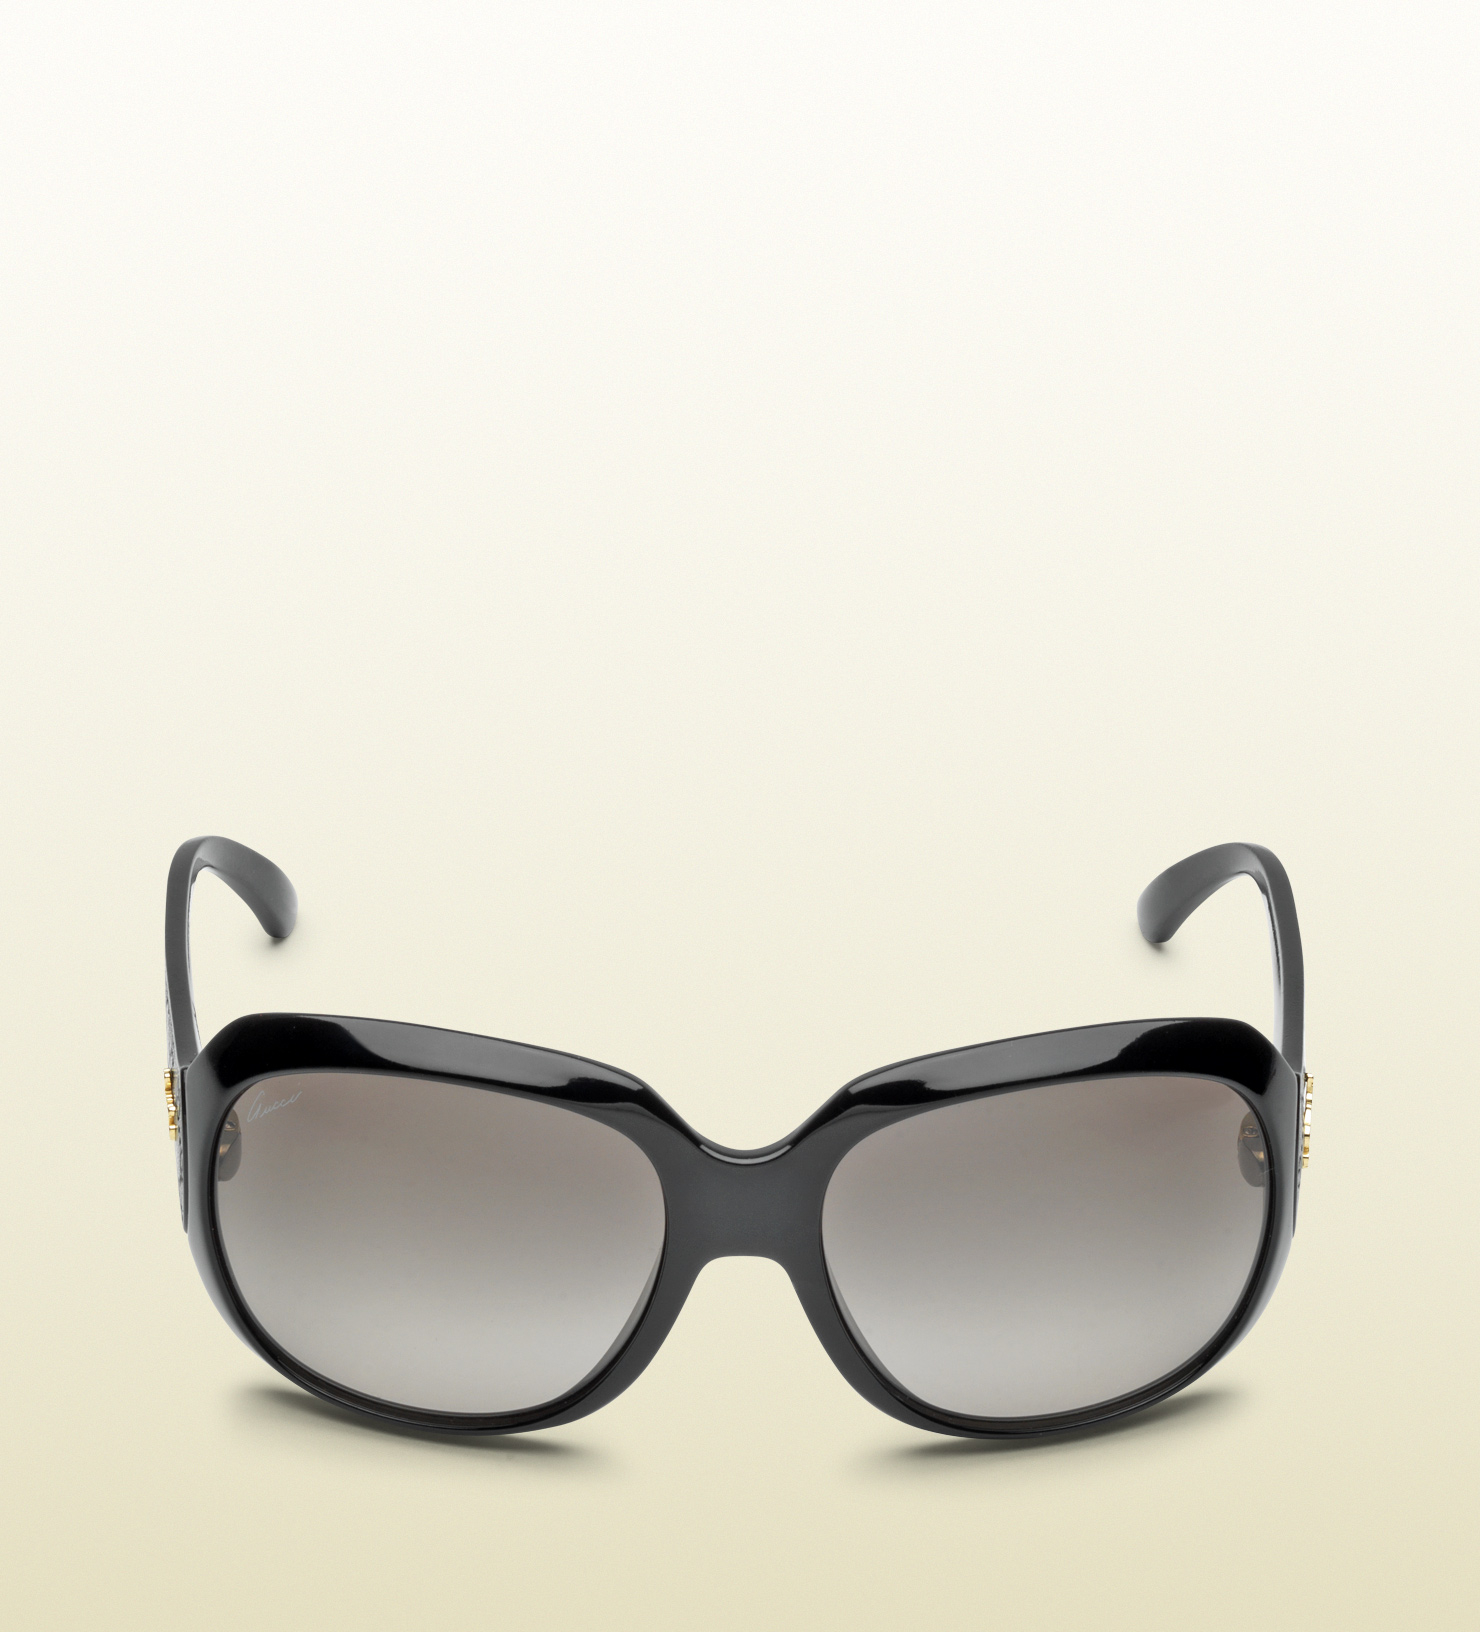 14ec608d92cc Lyst - Gucci Womens Oversized Sunglasses with Leather Detail in Black